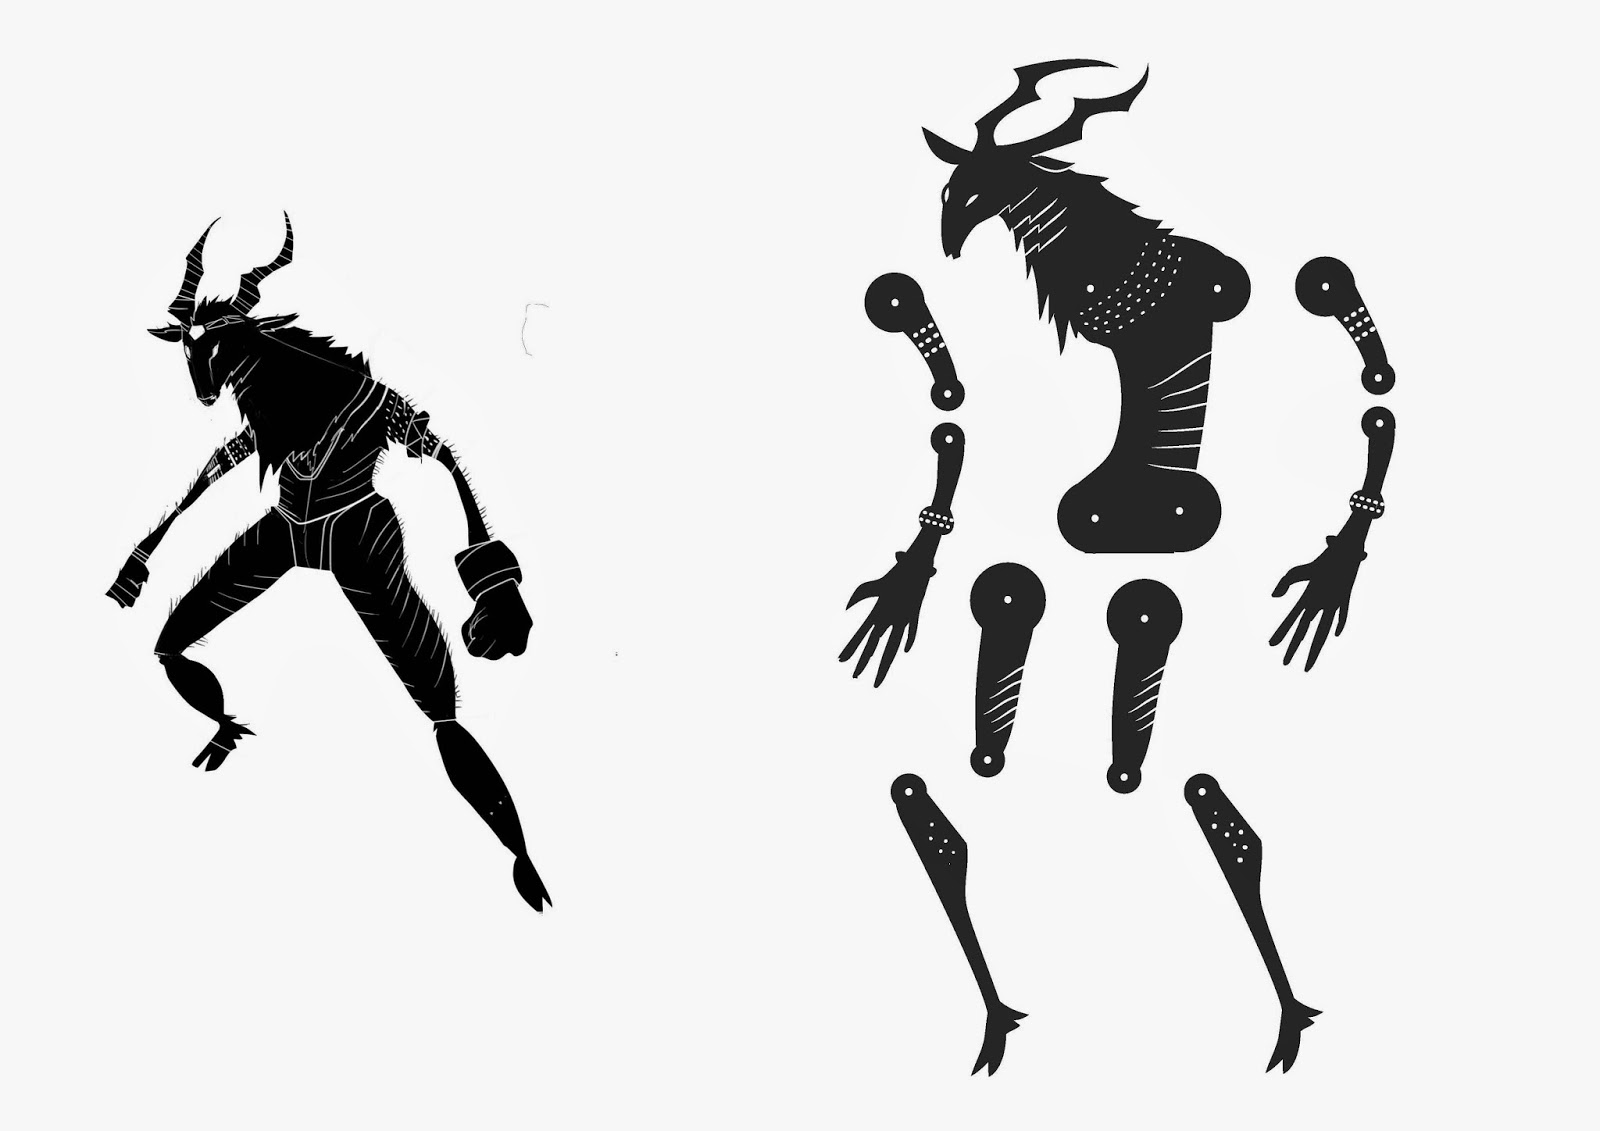 The Heroes Project: Shadow Puppet designs